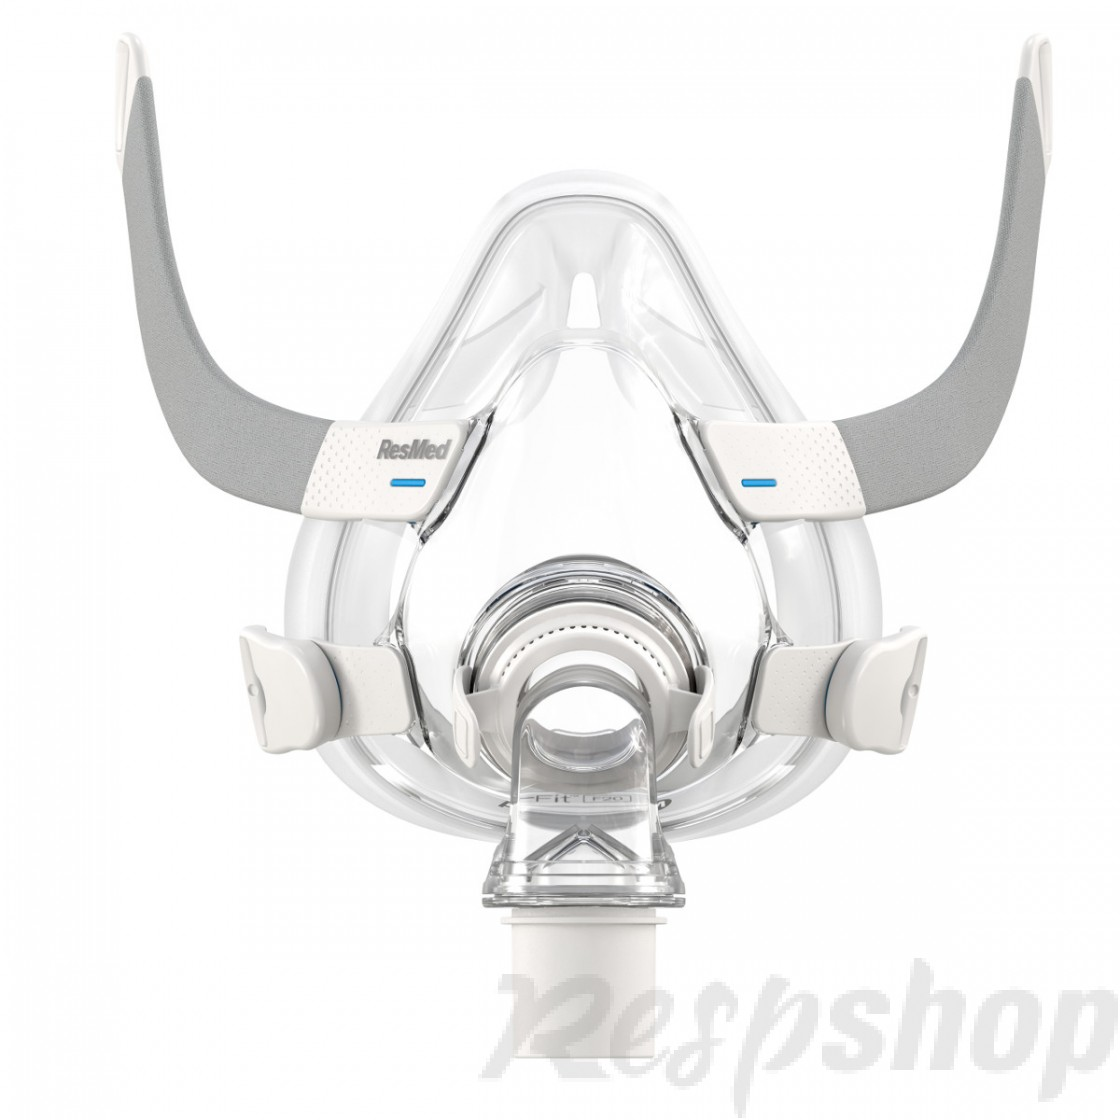 ResMed F20 & F20 For Her Full Face CPAP Mask Assembly Kit